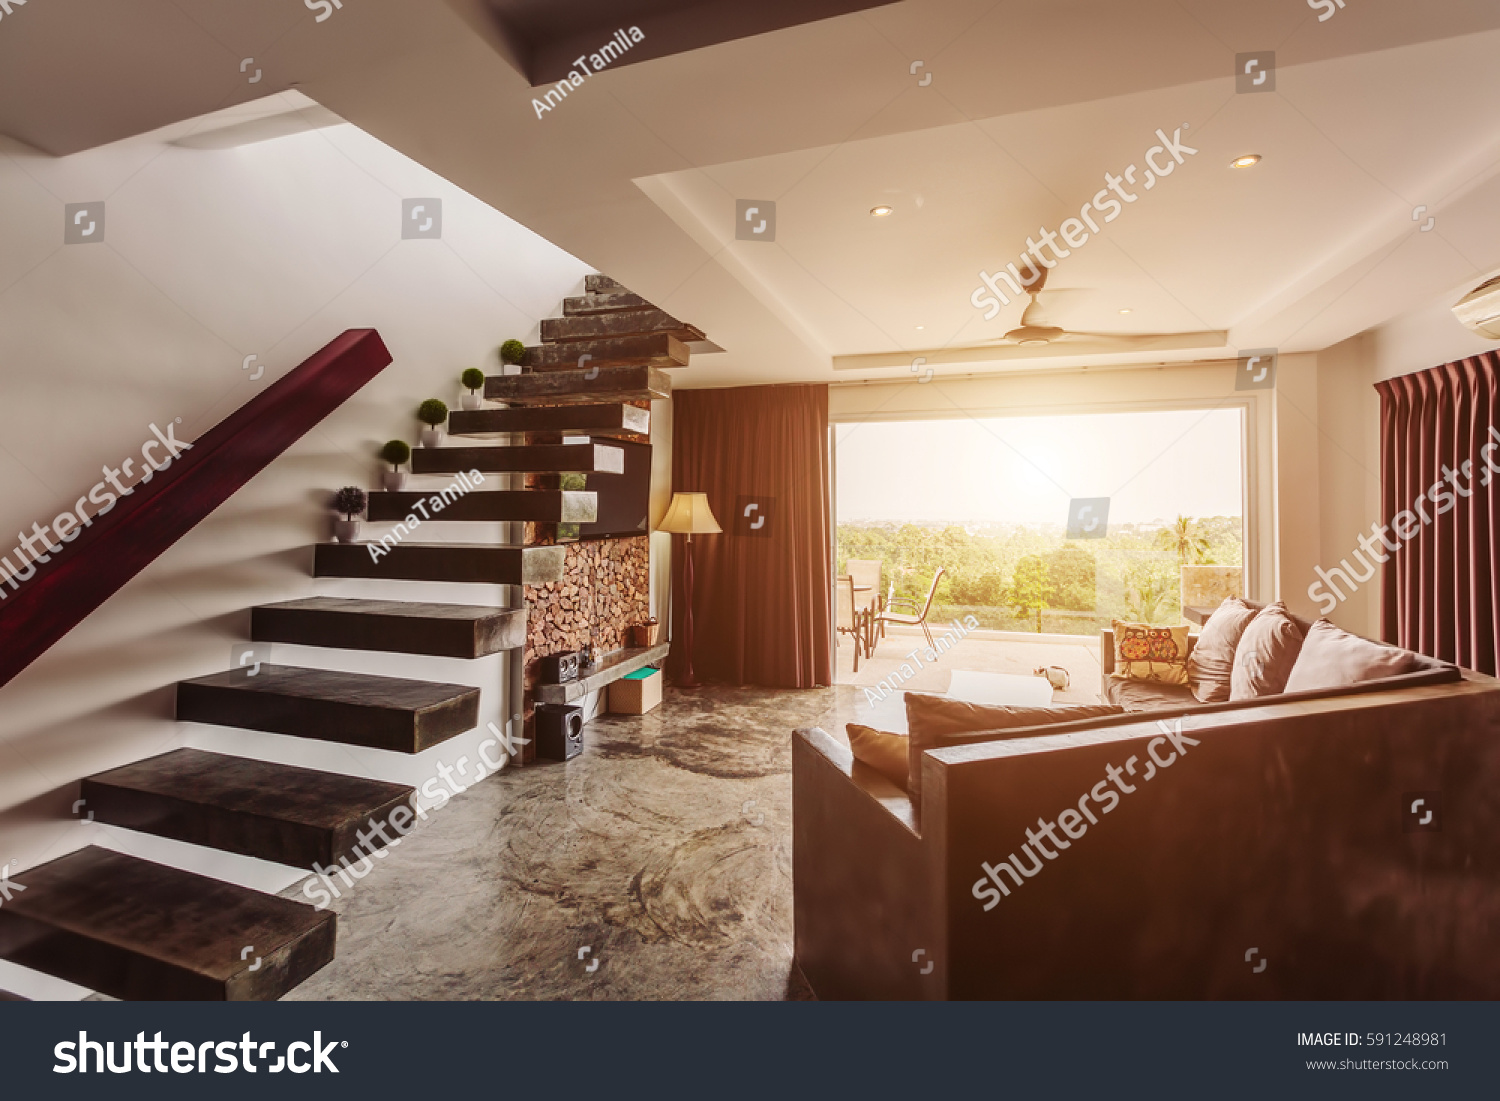 Modern Living Room Interior Design With Big Balcony, Concrete Floor And  Stairs To Second Floor